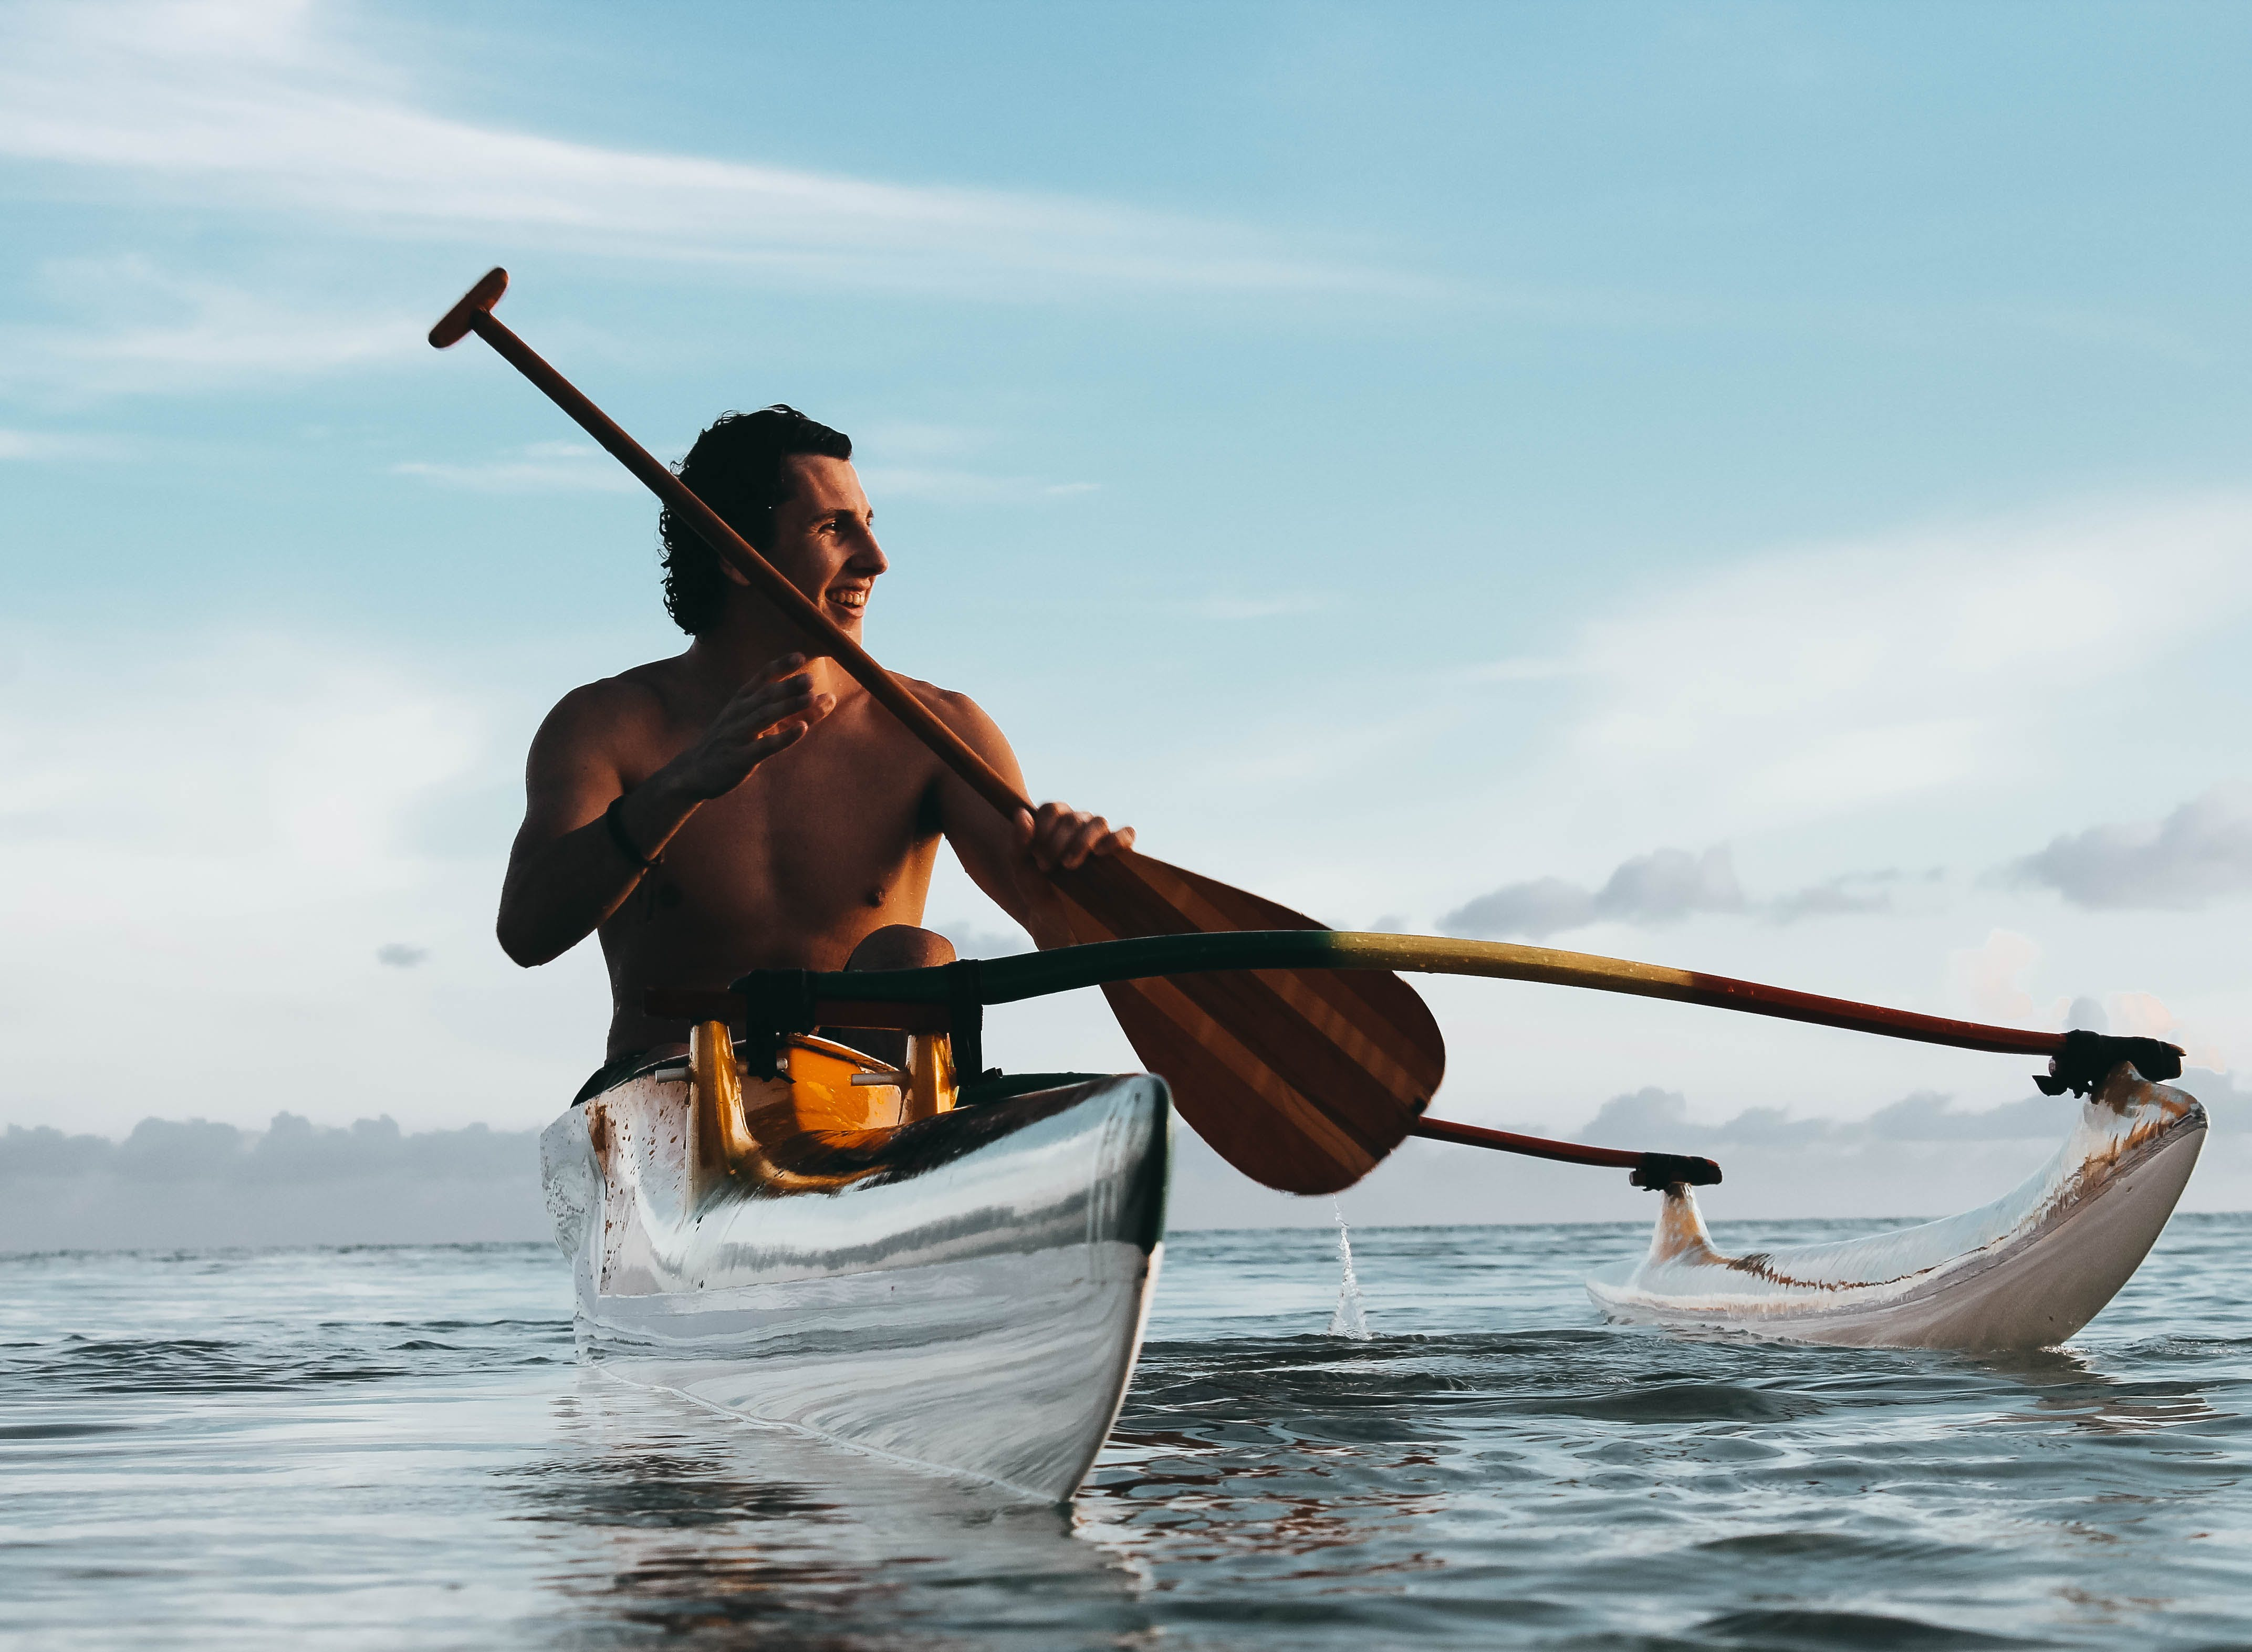 Man Riding on Boat Holding Brown Paddle